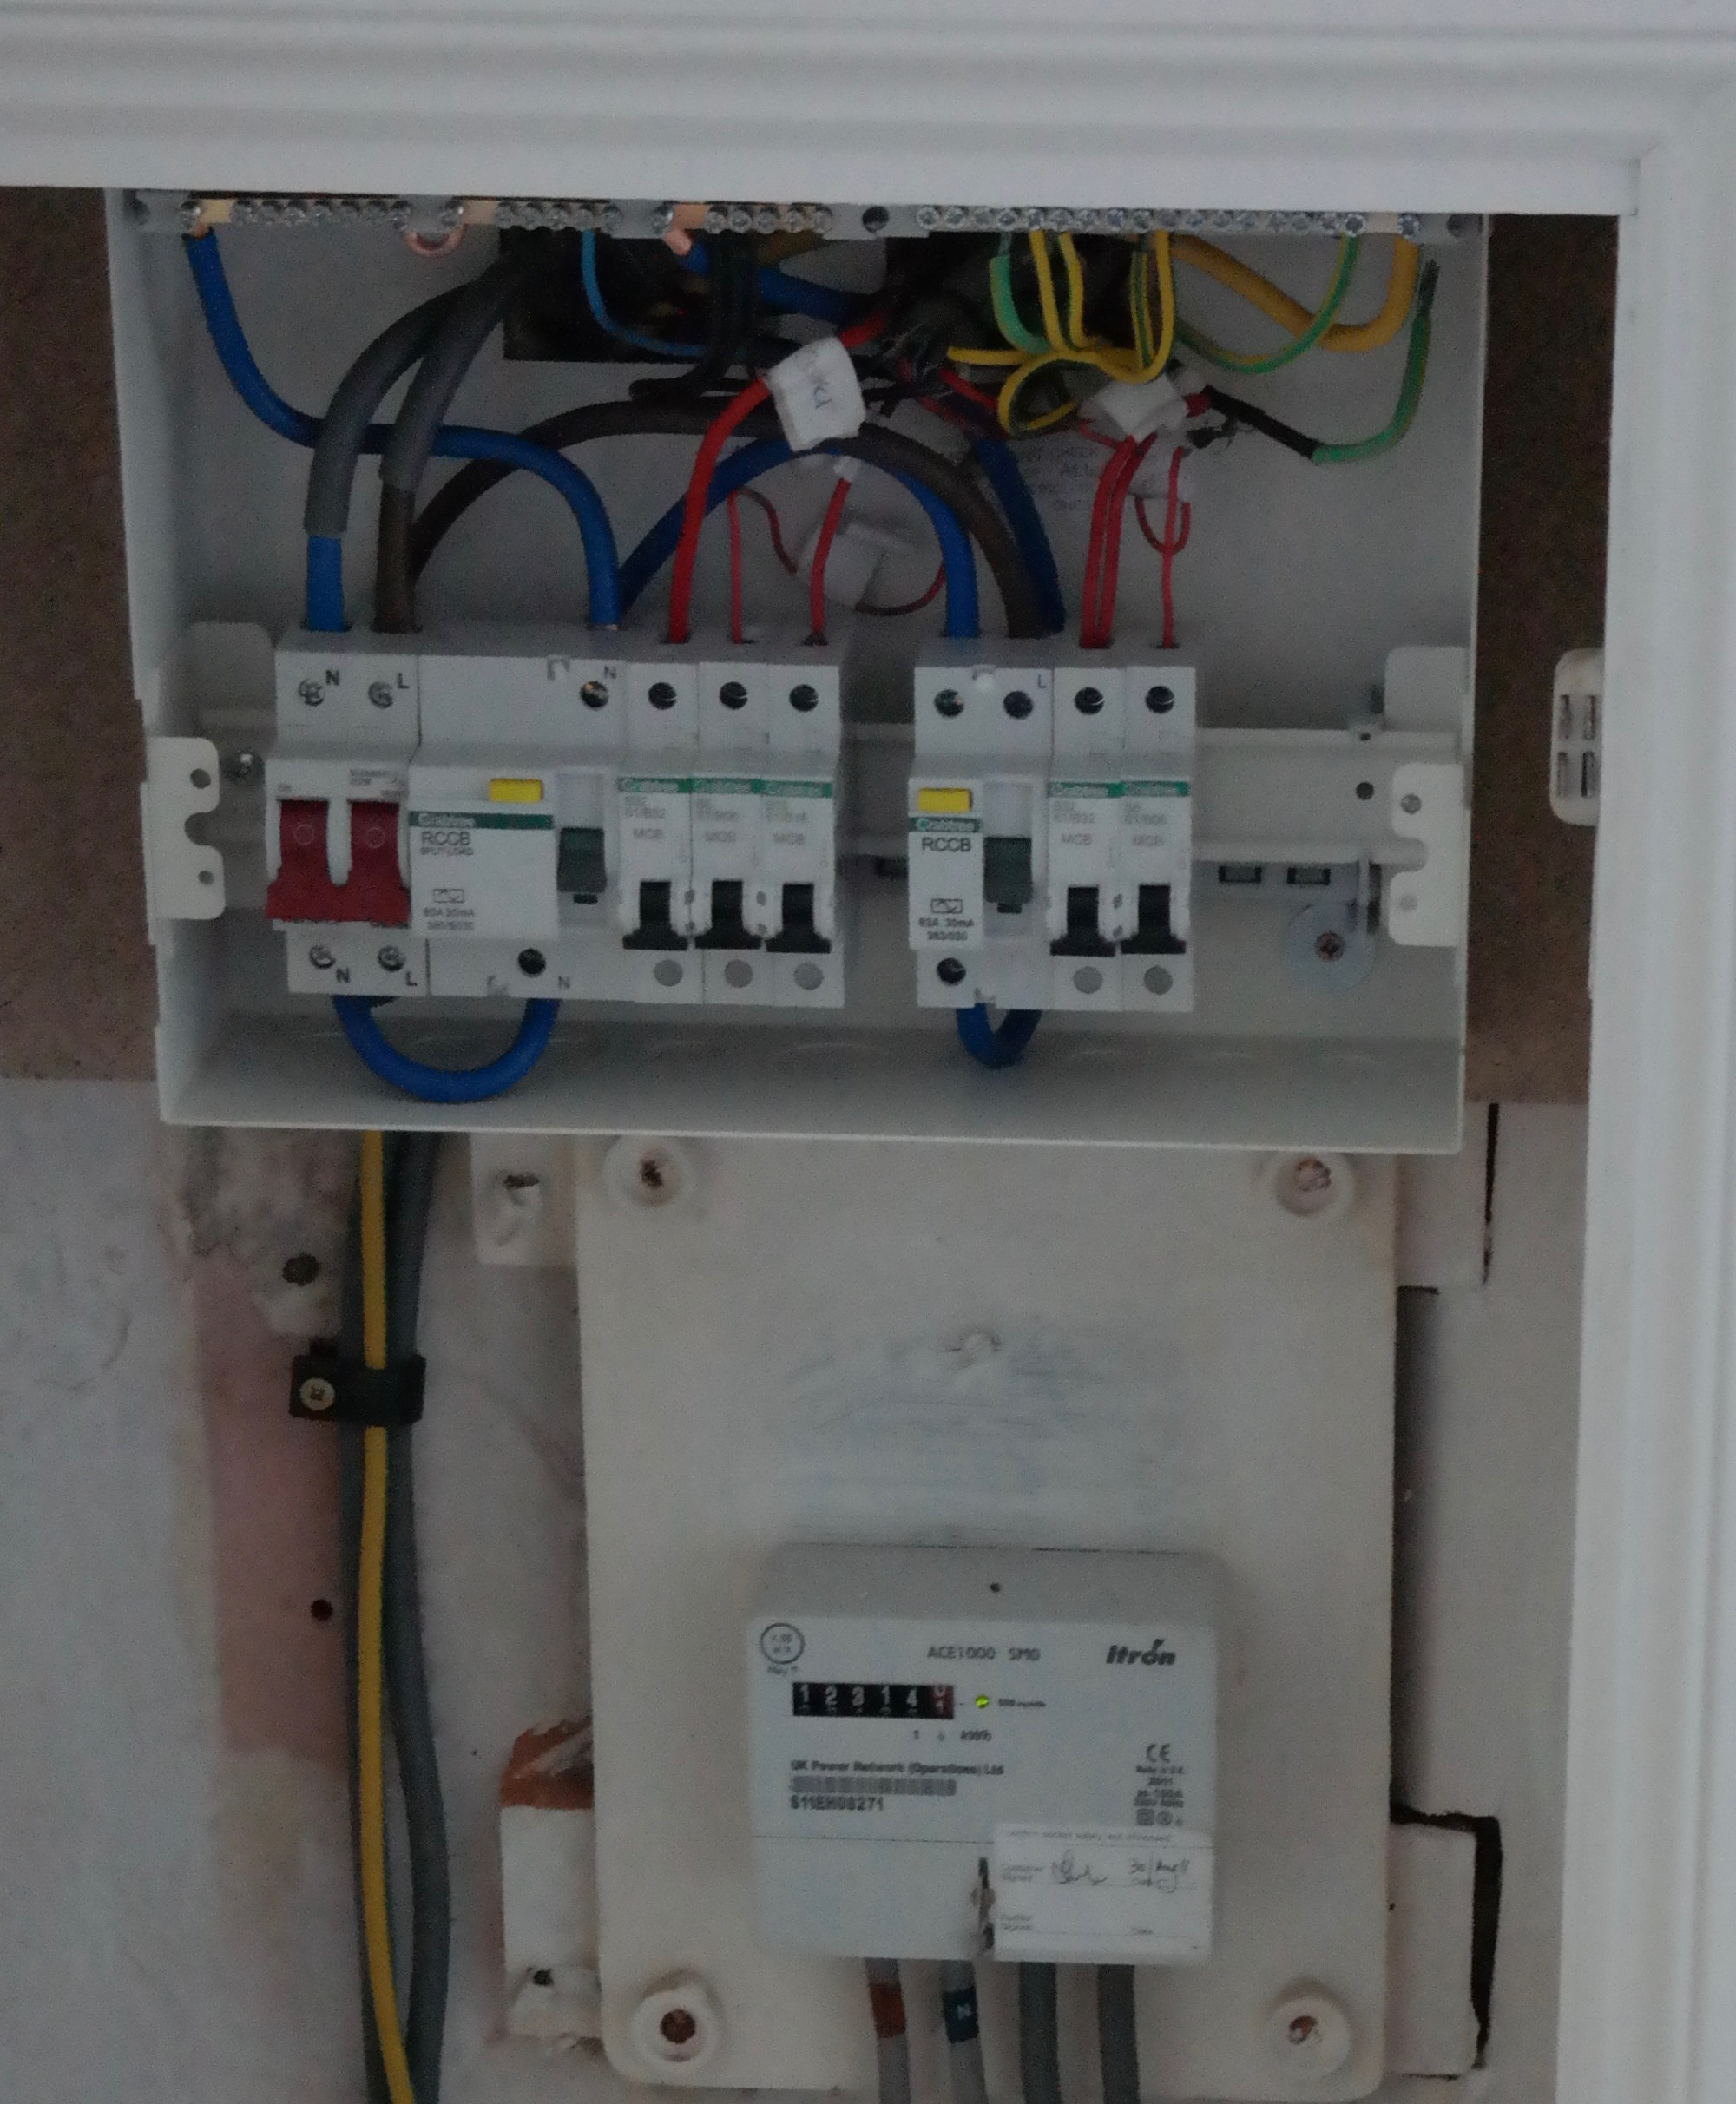 hight resolution of replacing upgrading consumer units fuse boxes auber electrical replace old fuse box with rcd